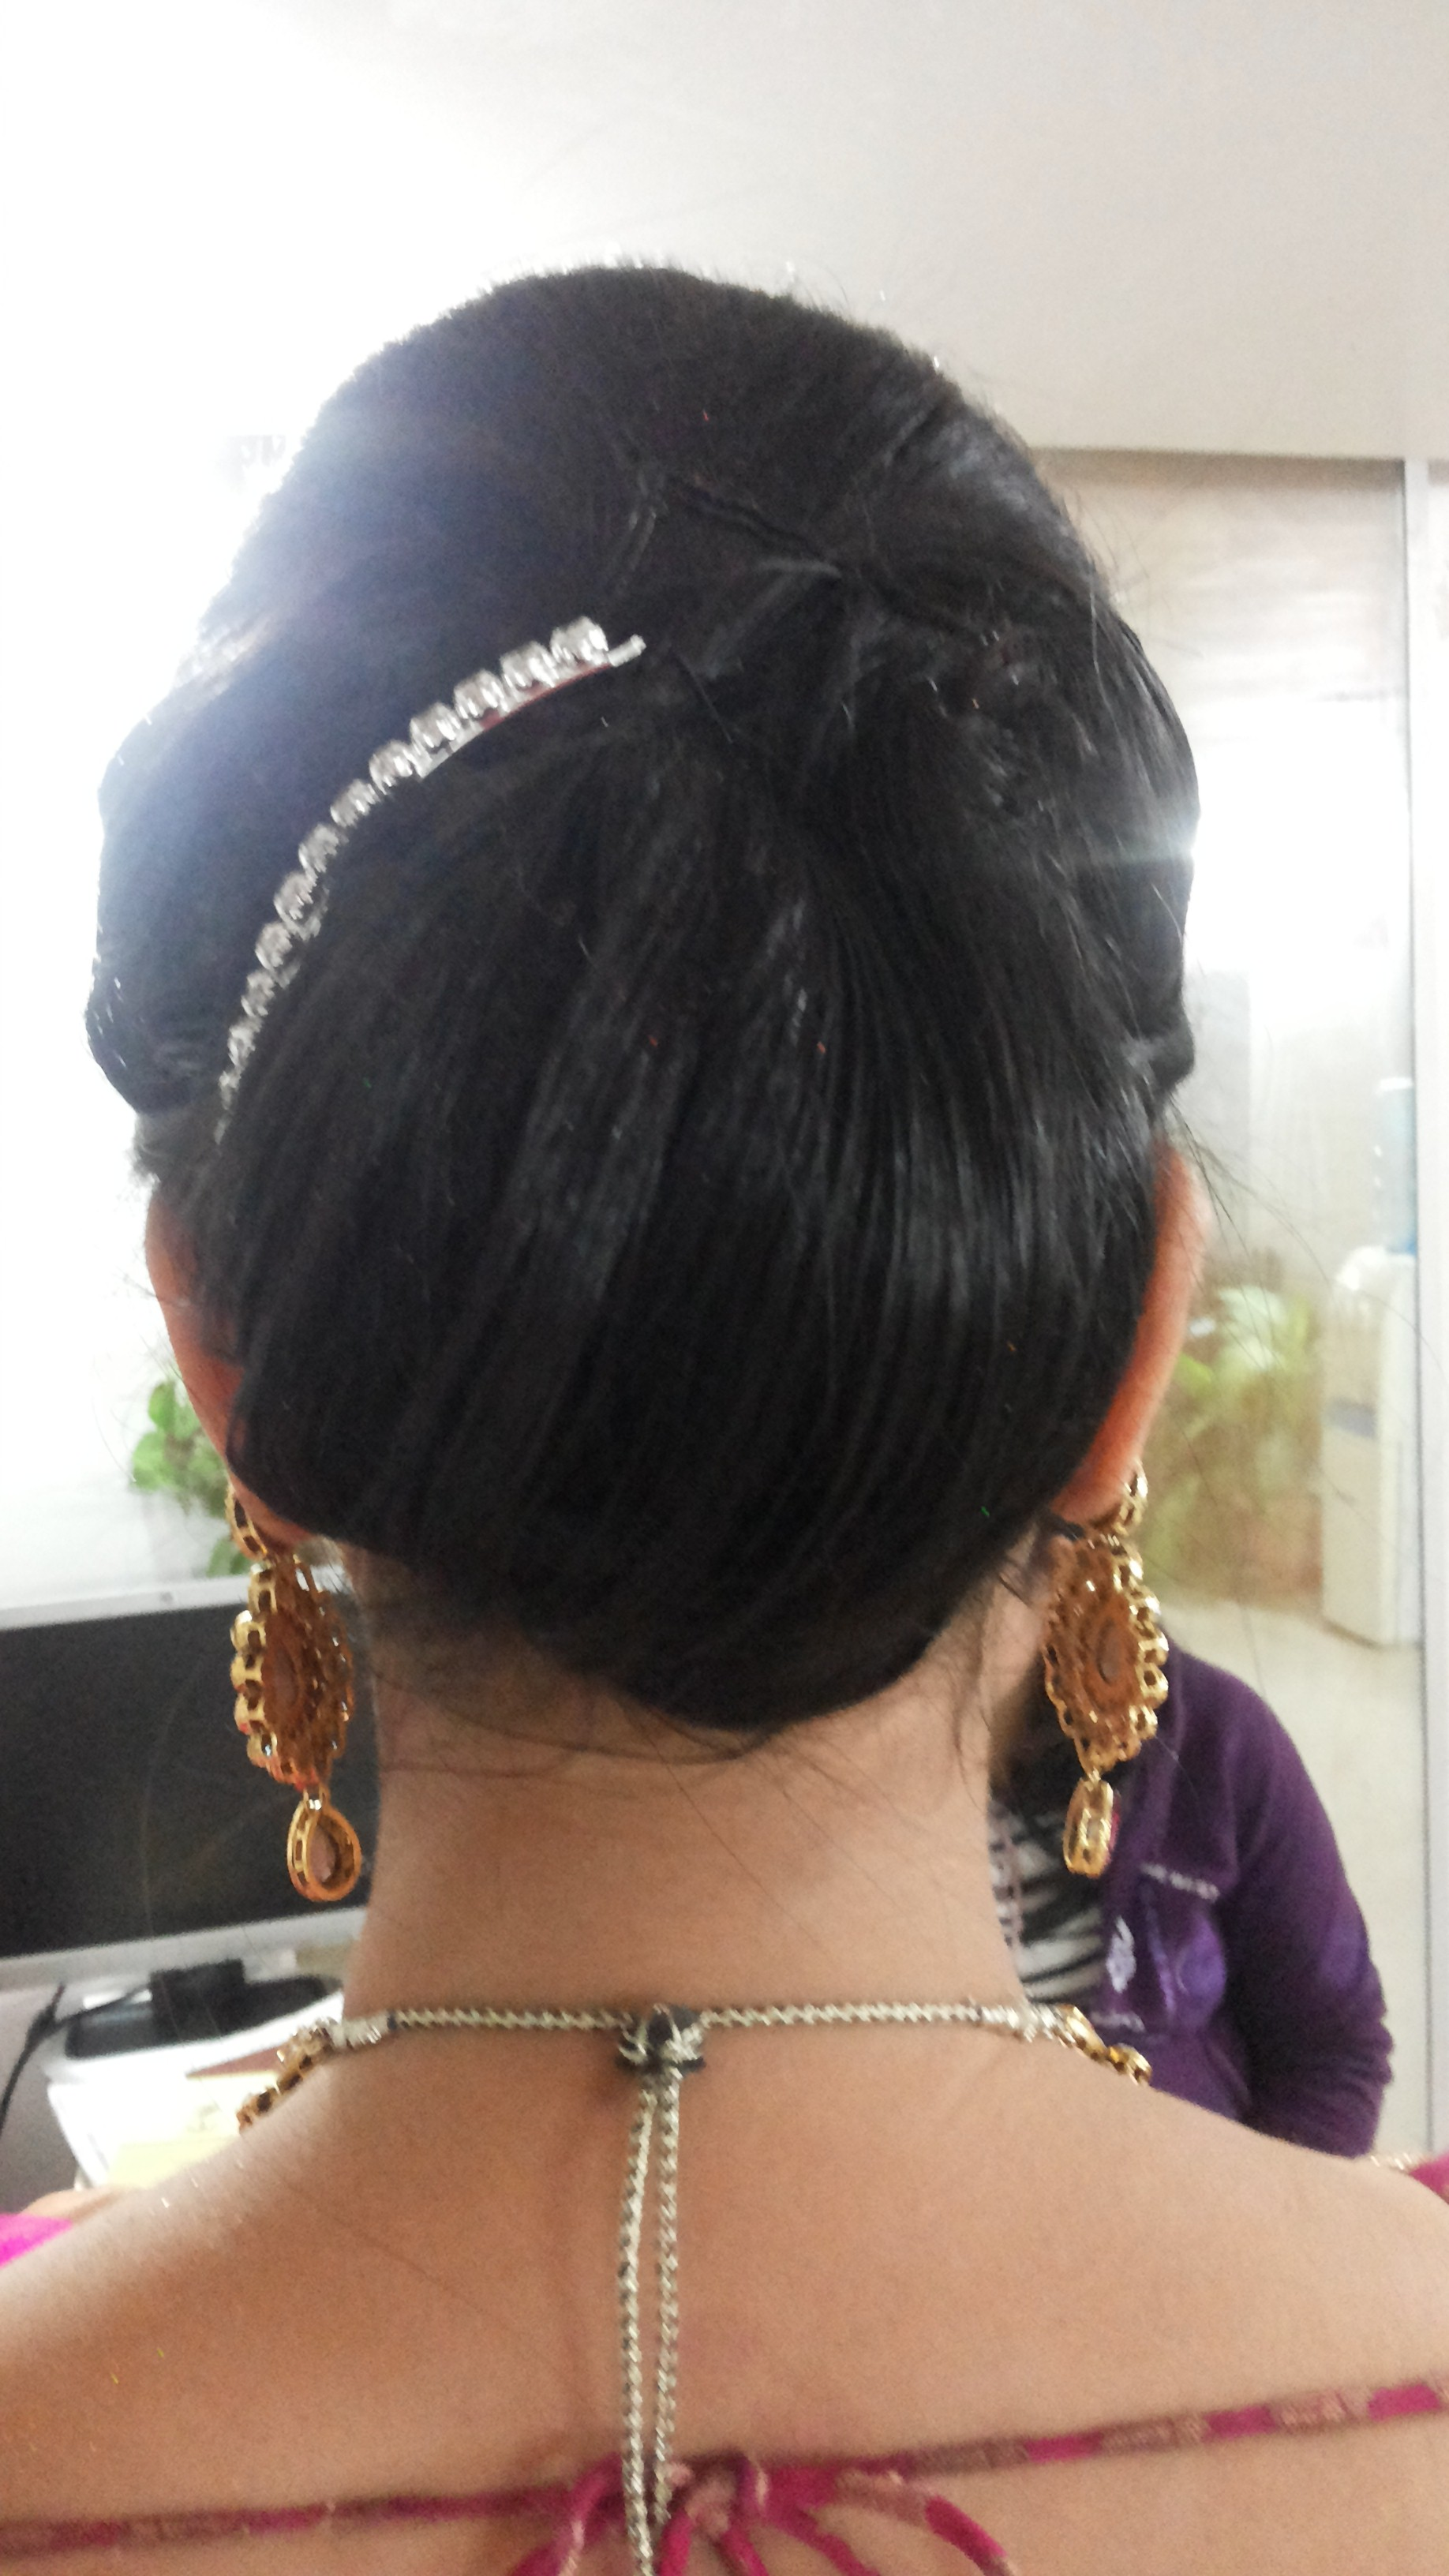 habibs hair style deals in kapoorthala lucknow hair salon spa skin 4799 | 20141202 194346 3482465